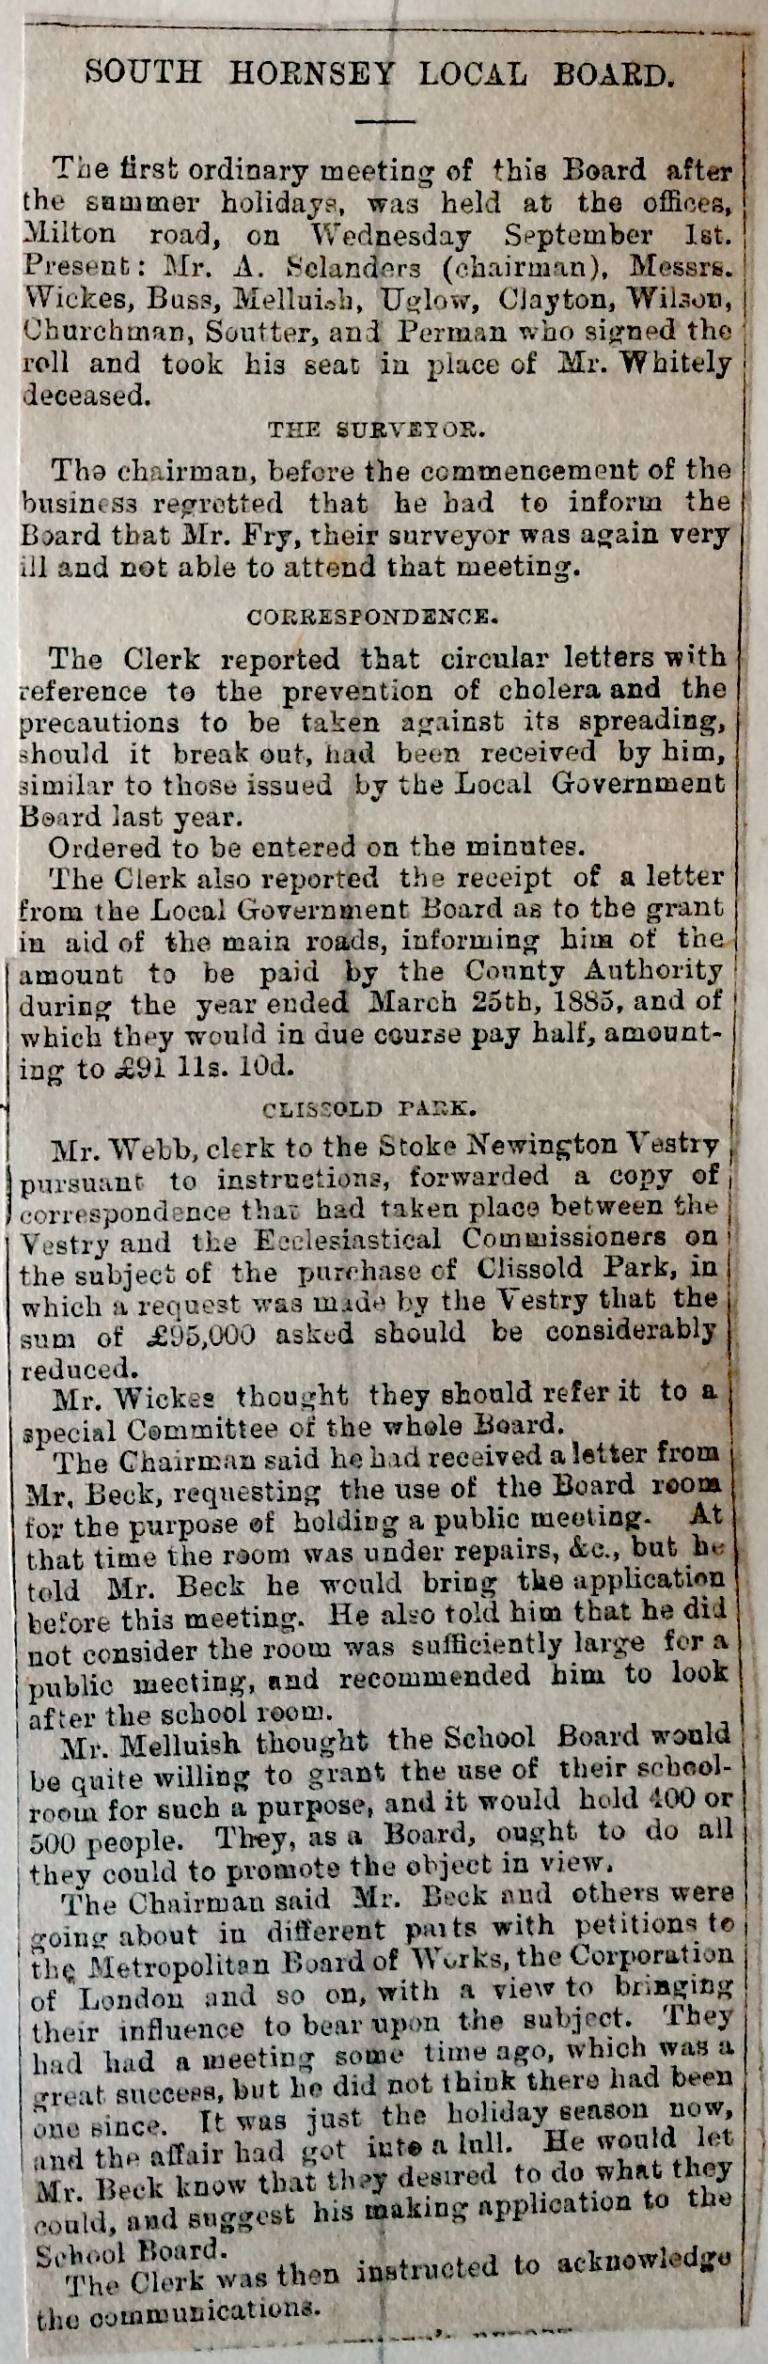 01_09_1886 NEWS CLIPPING South Hornsey Local Board meeting .JPG